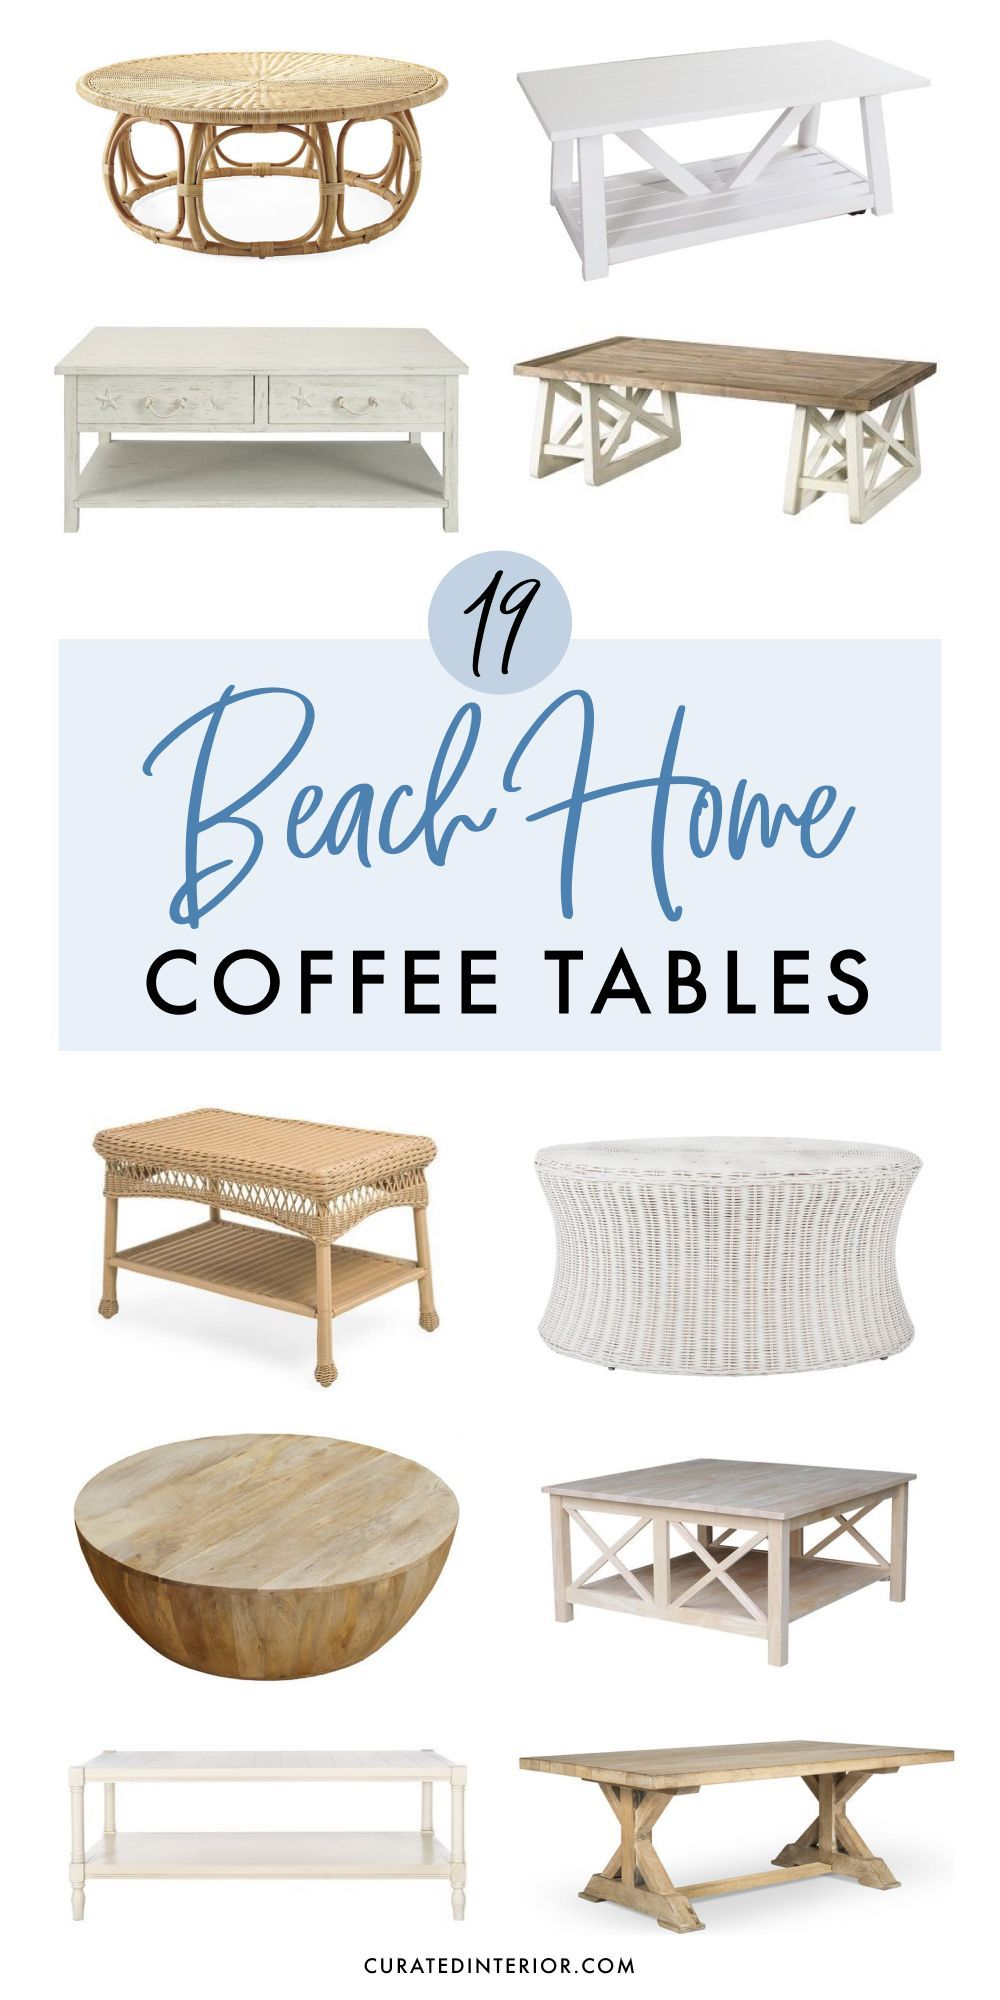 19 Coastal Coffee Tables For Your Beach Home Coffee Table